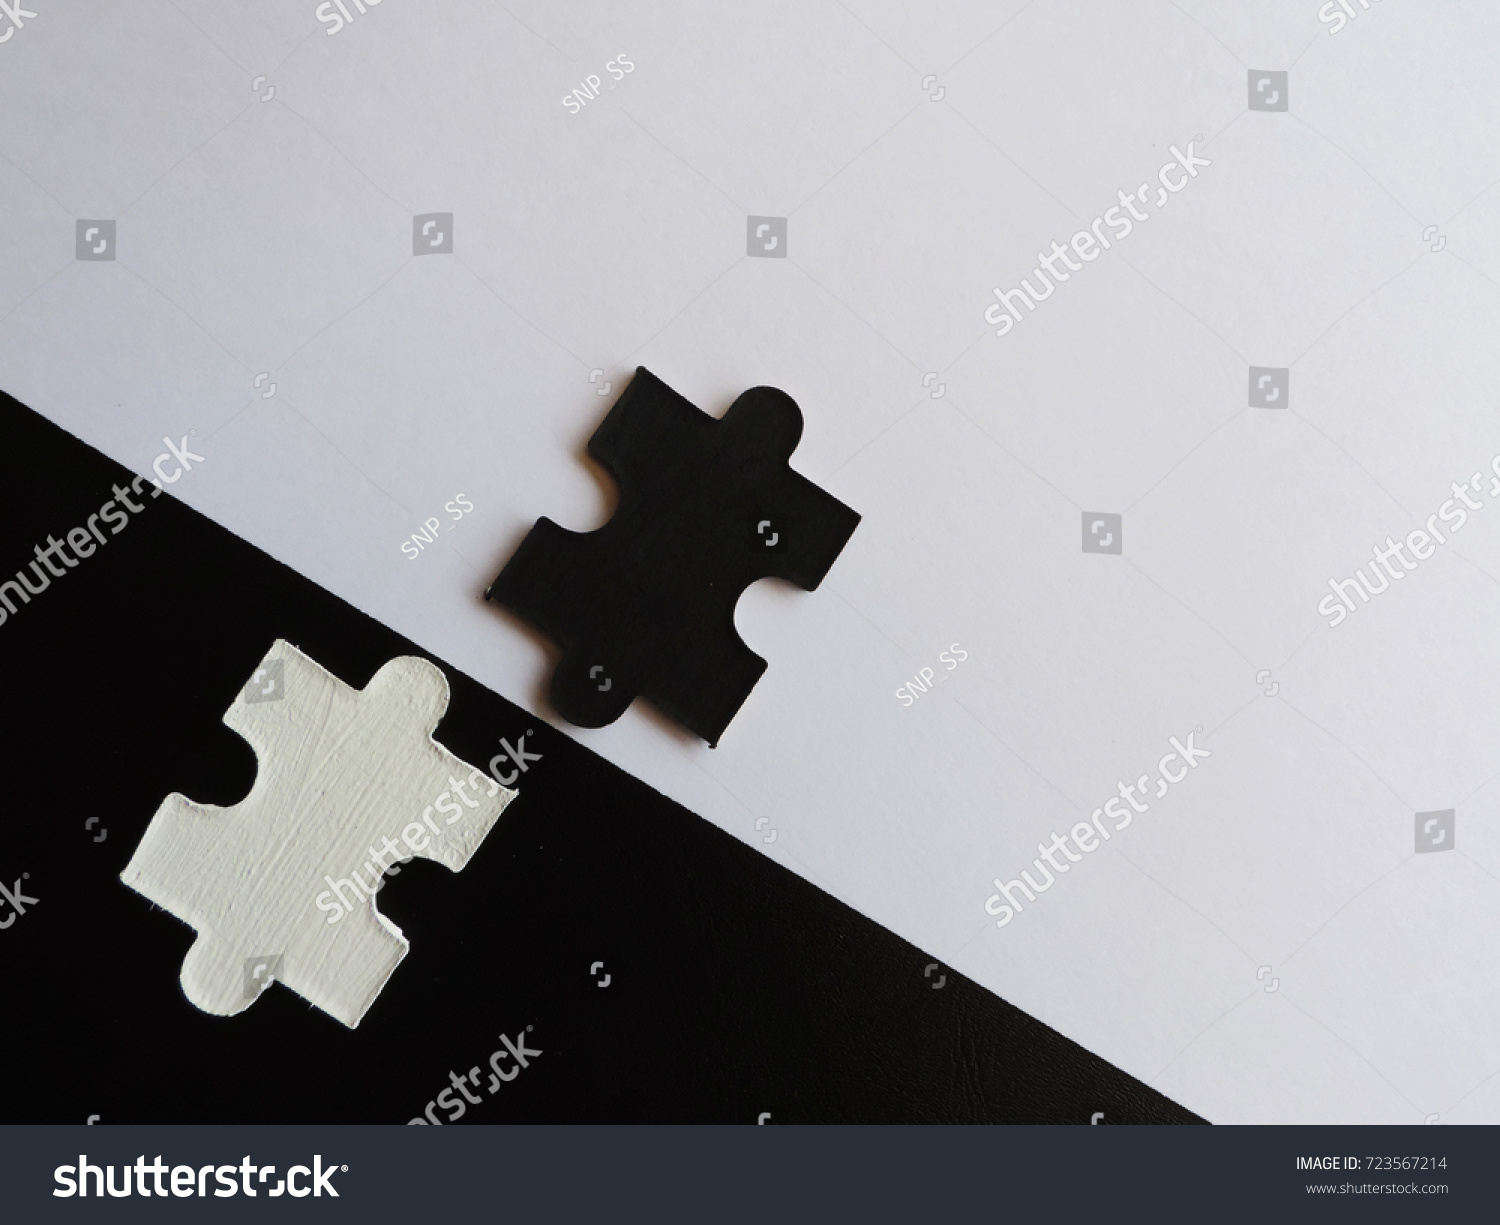 Two Jigsaw Puzzle PiecesBlack Piece And White